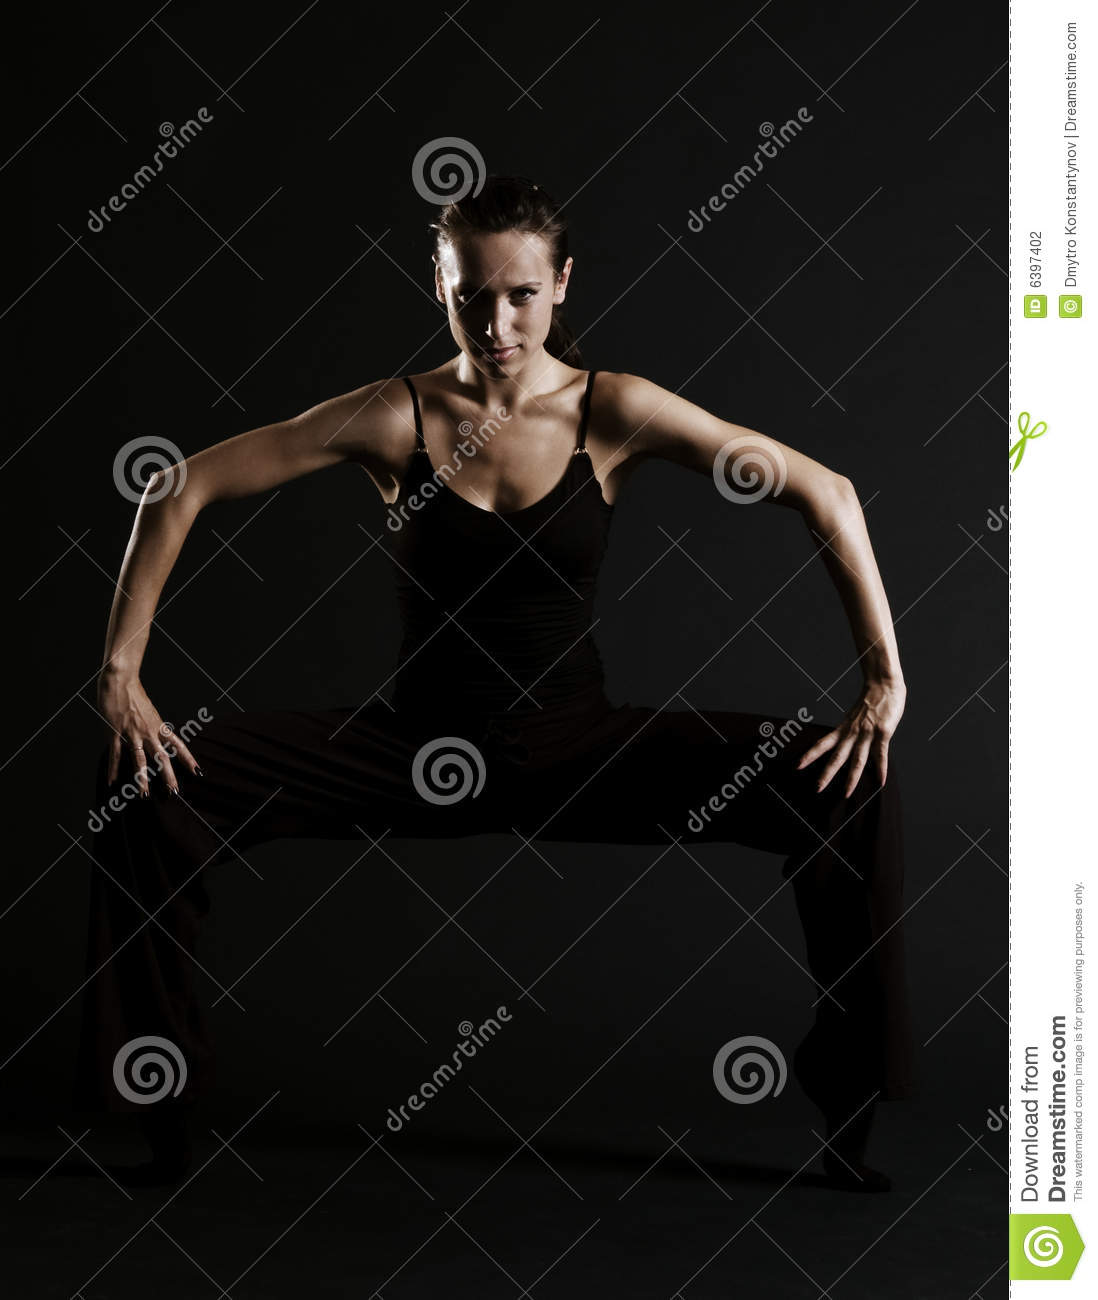 Woman posing against black background